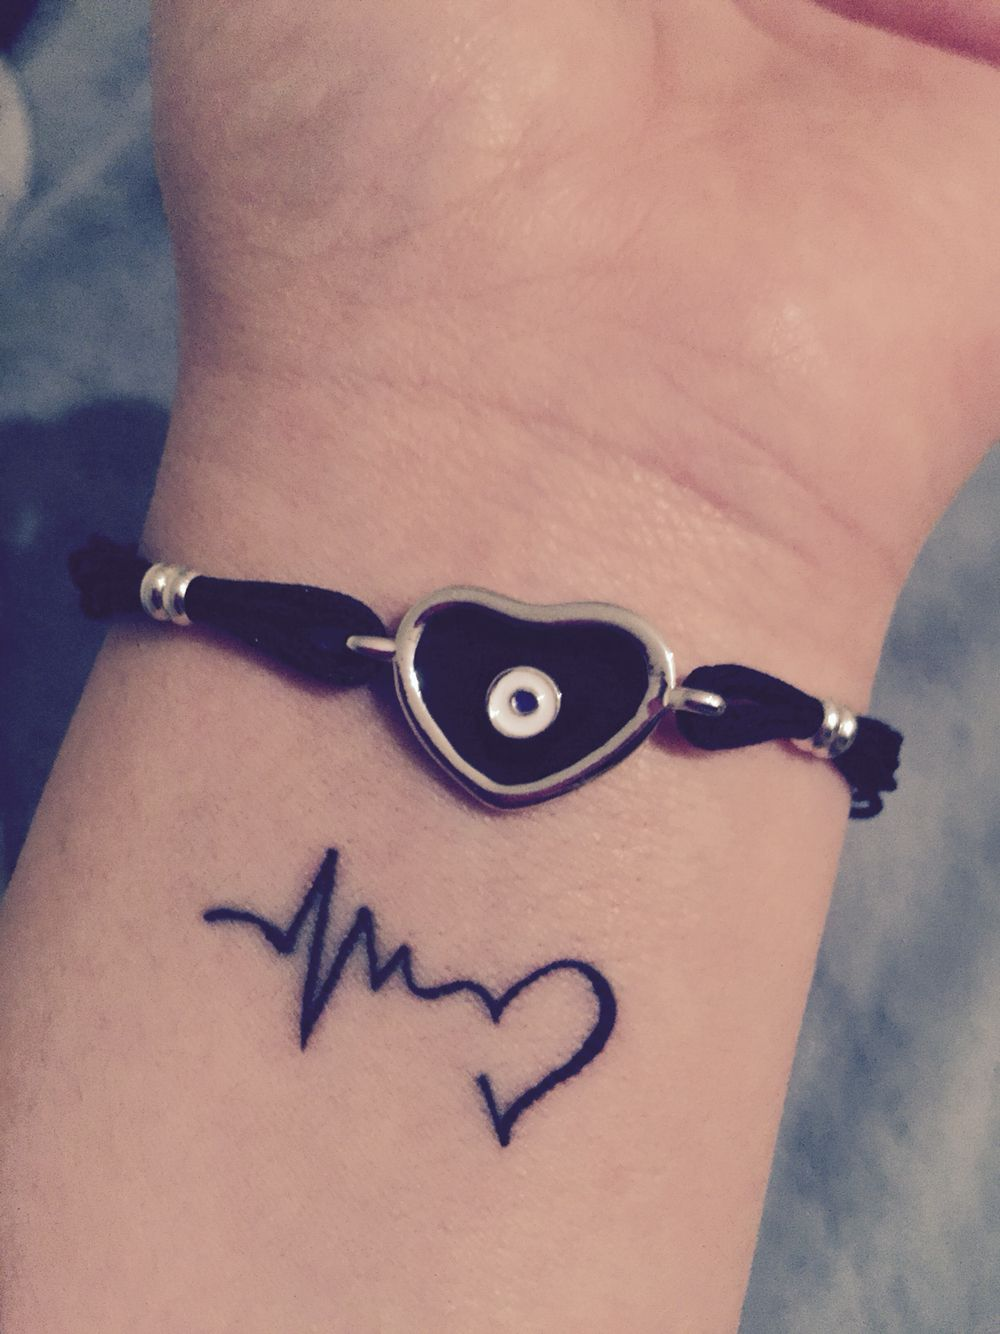 Wrist tattoo... Heartbeat, love, life | tattoo | Tattoo ...